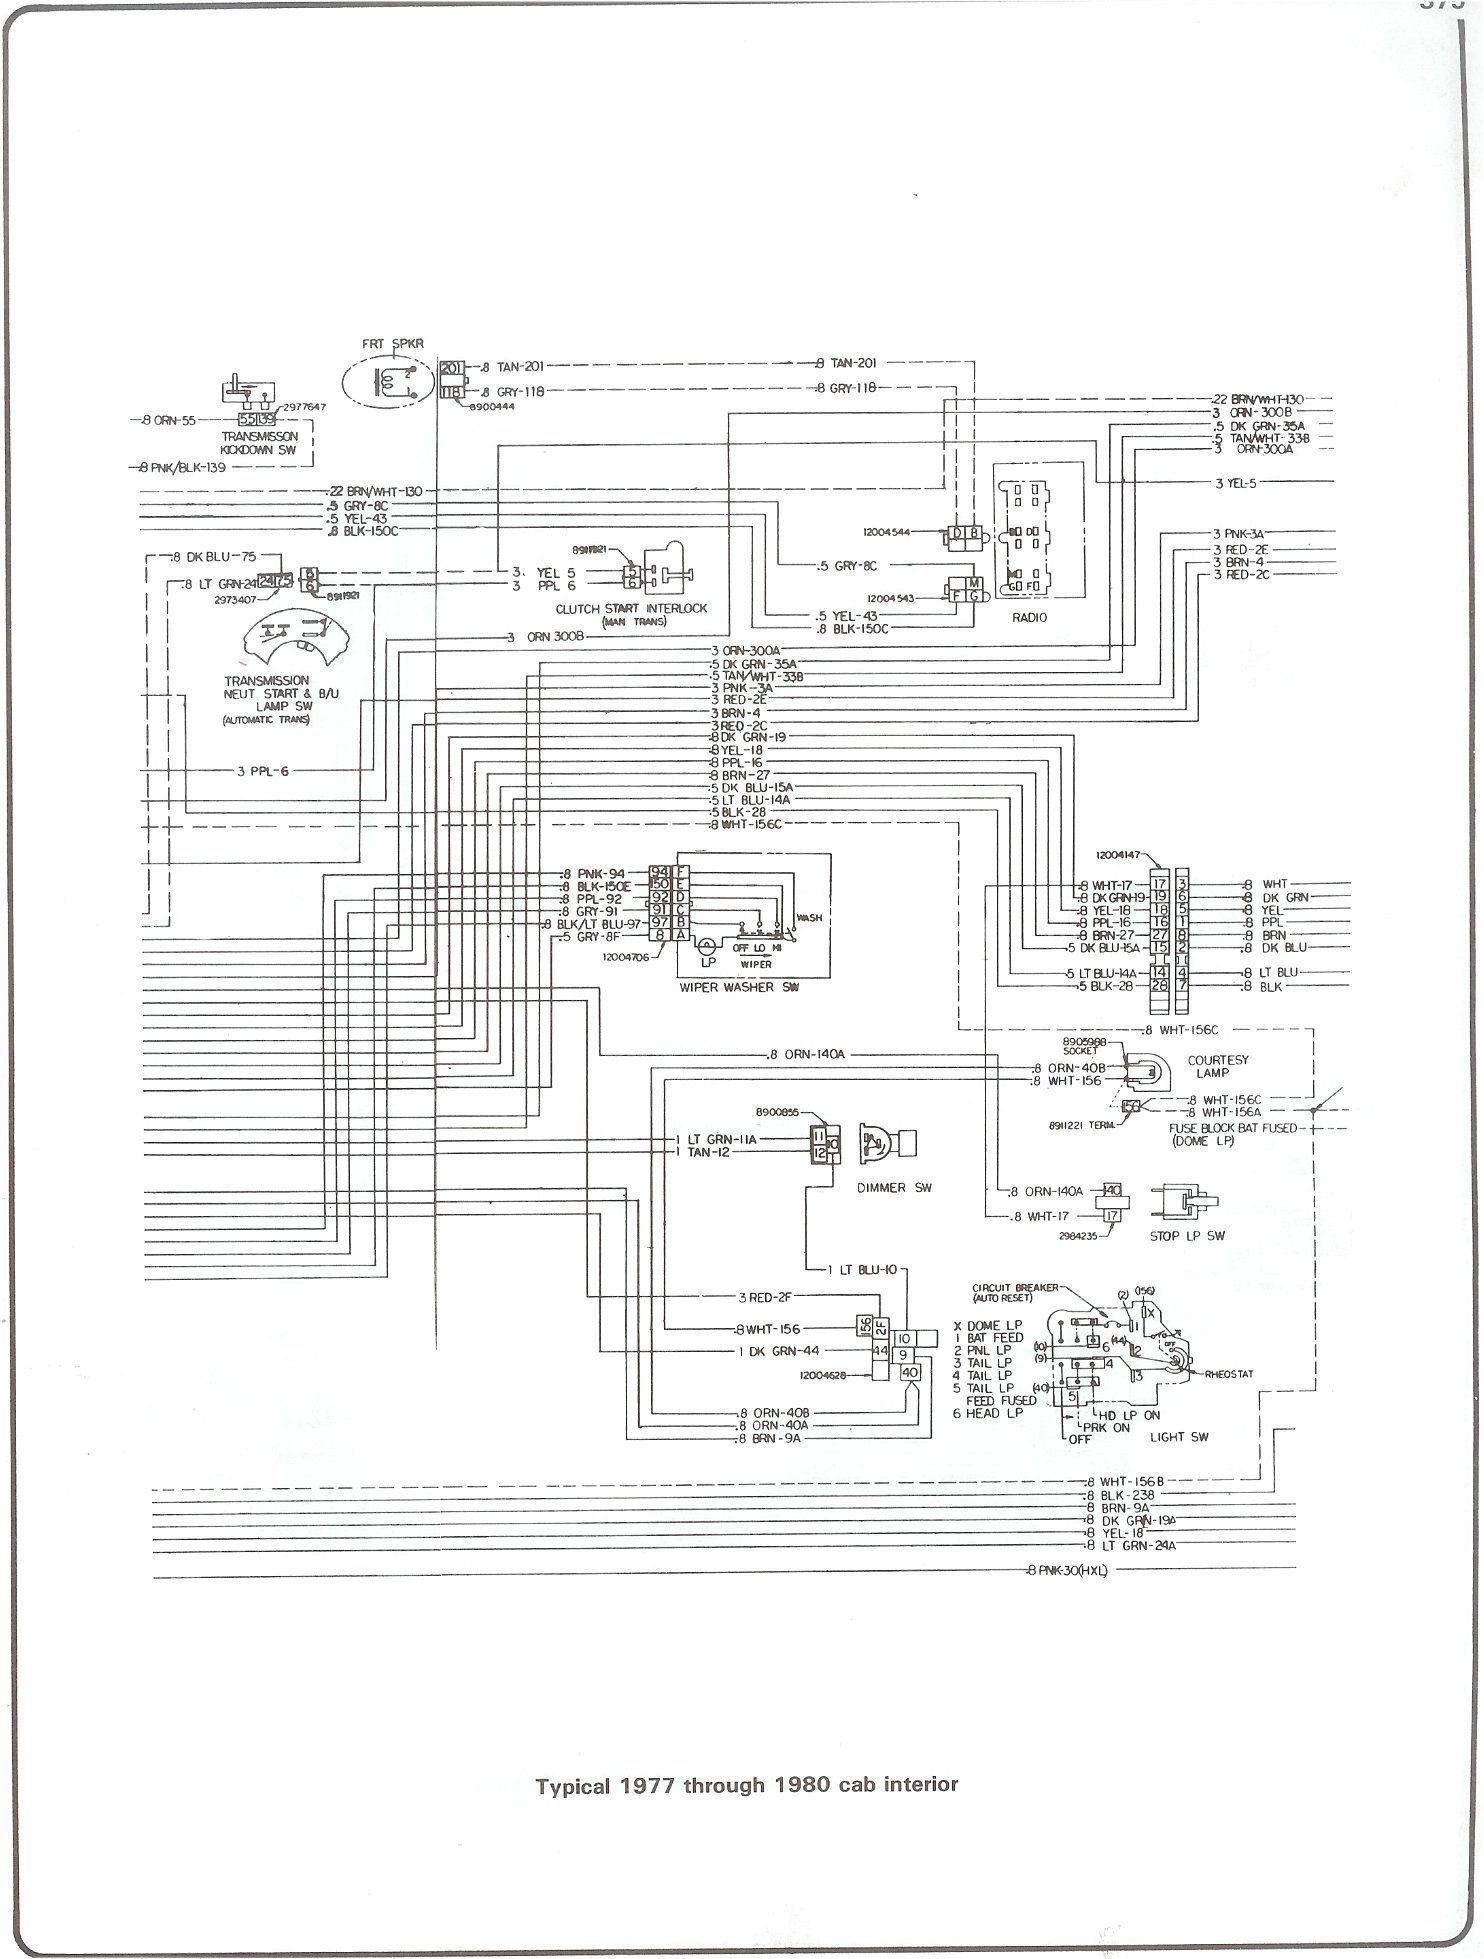 77 80_cab_inter complete 73 87 wiring diagrams gm wiring harness diagram at crackthecode.co